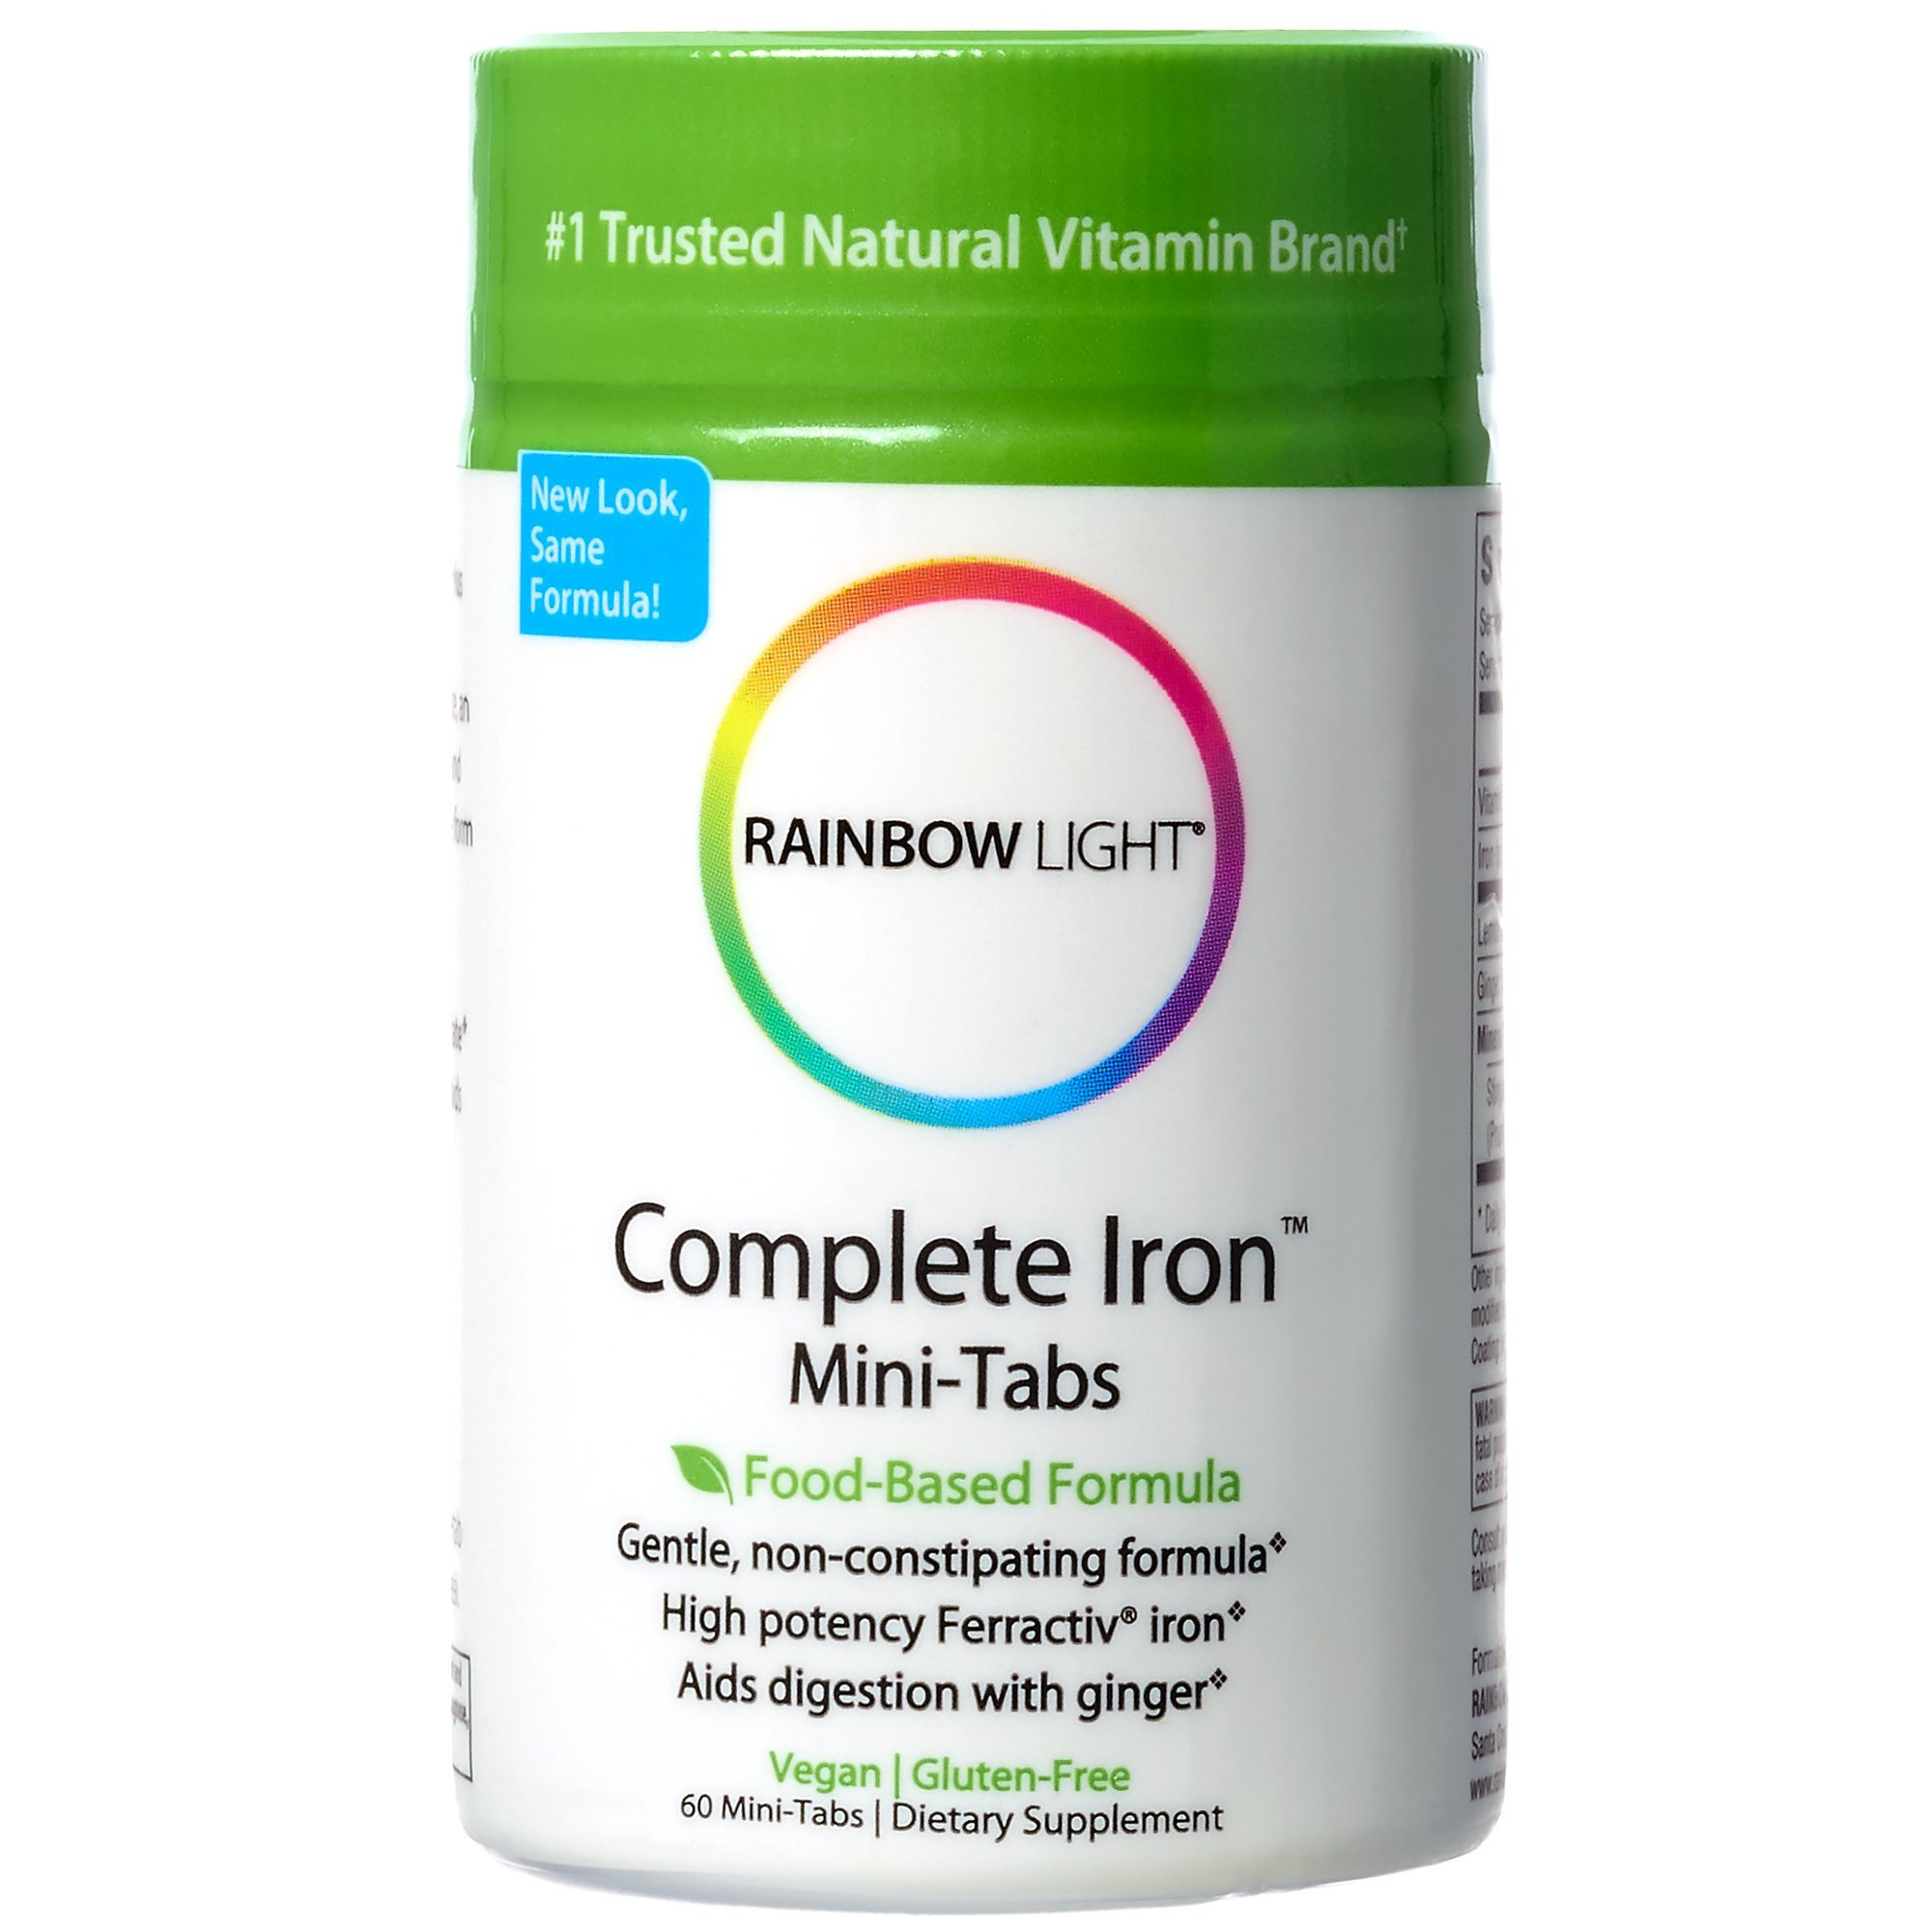 Rainbow Light - Complete Iron Mini-Tabs, 60 Count, Vegan, Energy